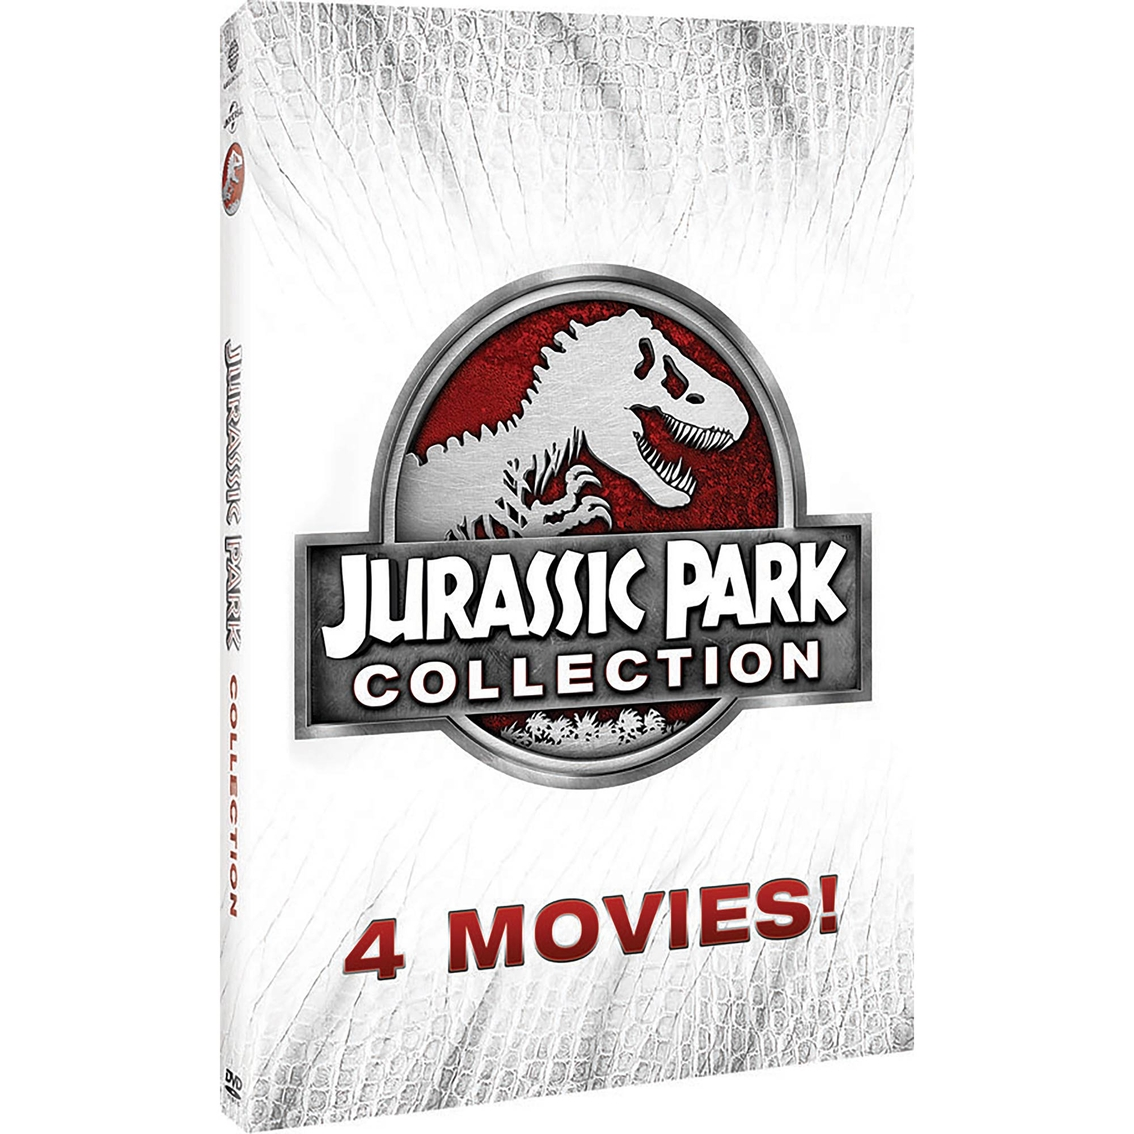 Image result for Jurassic park series dvd